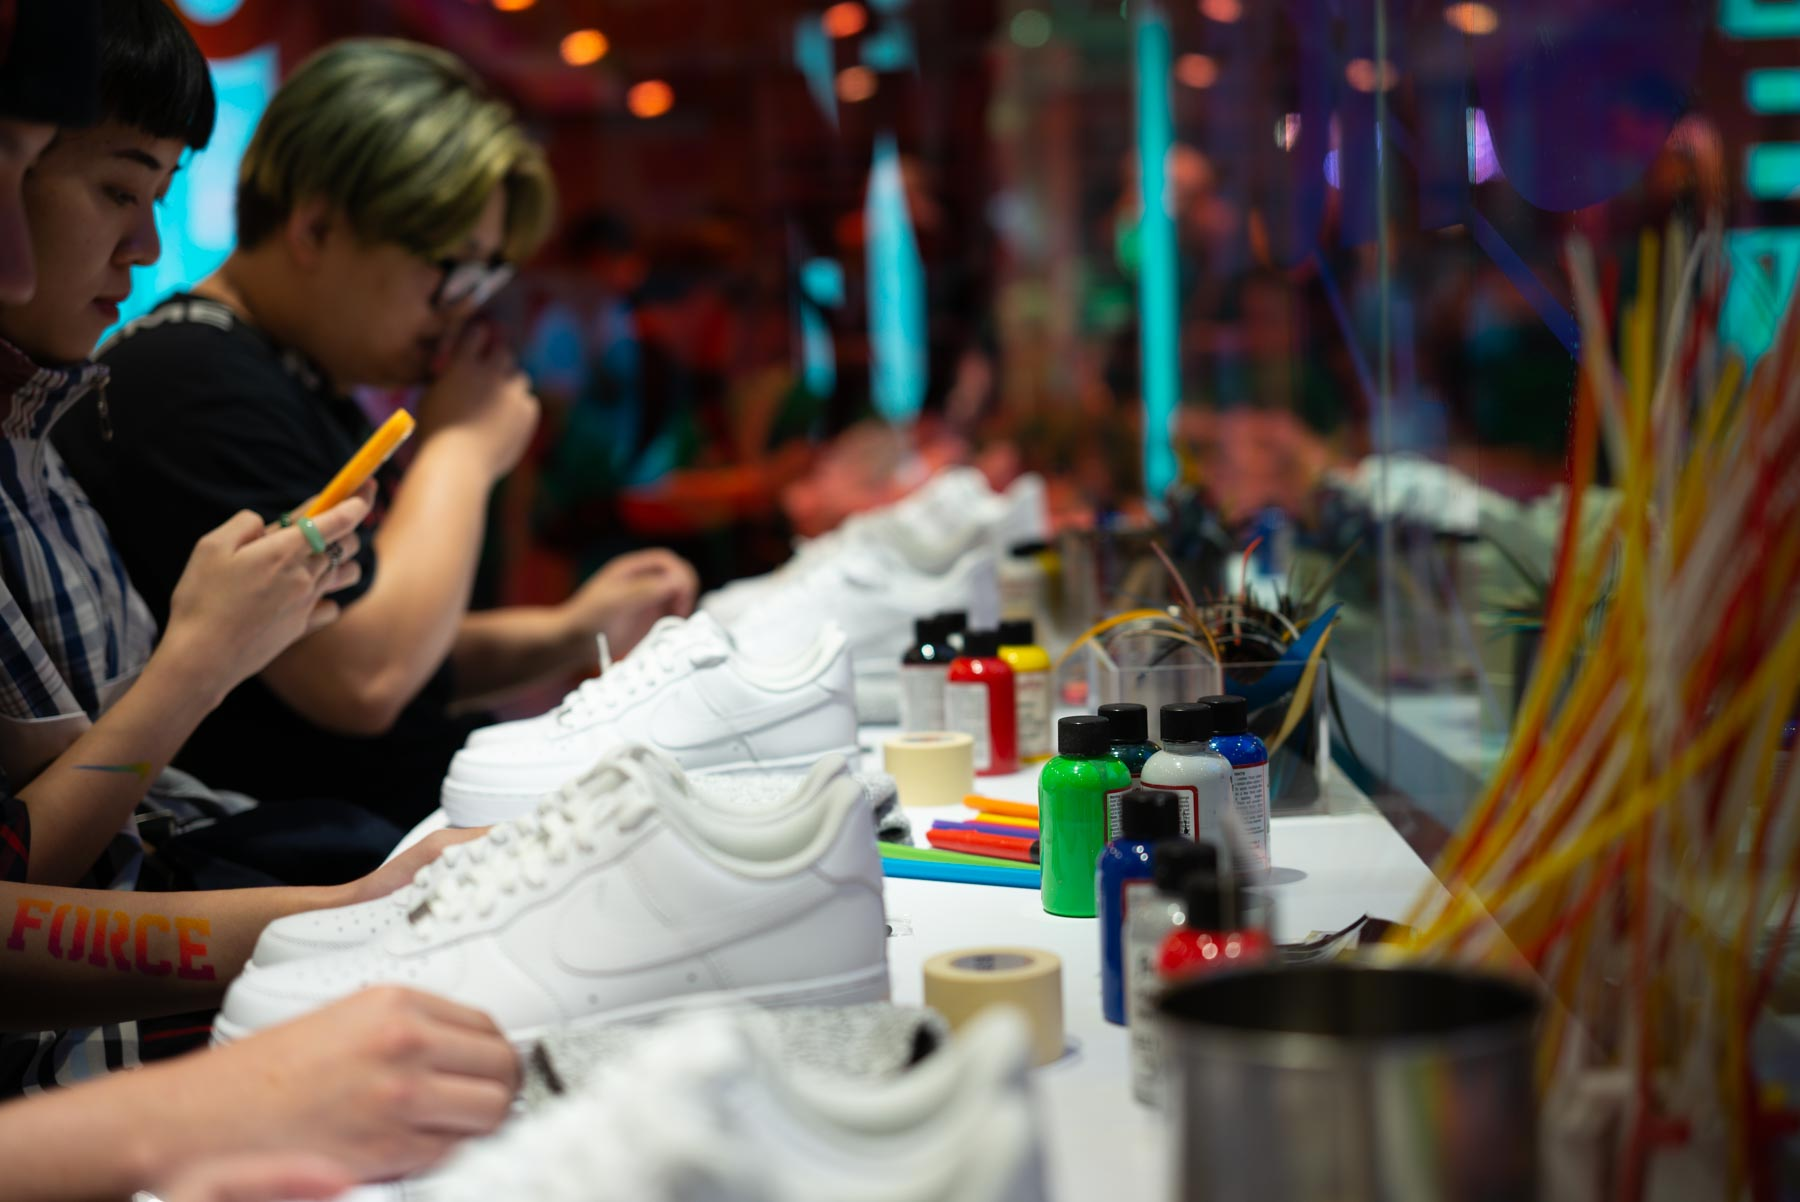 20180928-nike-airforce1-vogue-fashion-night-out-1009395